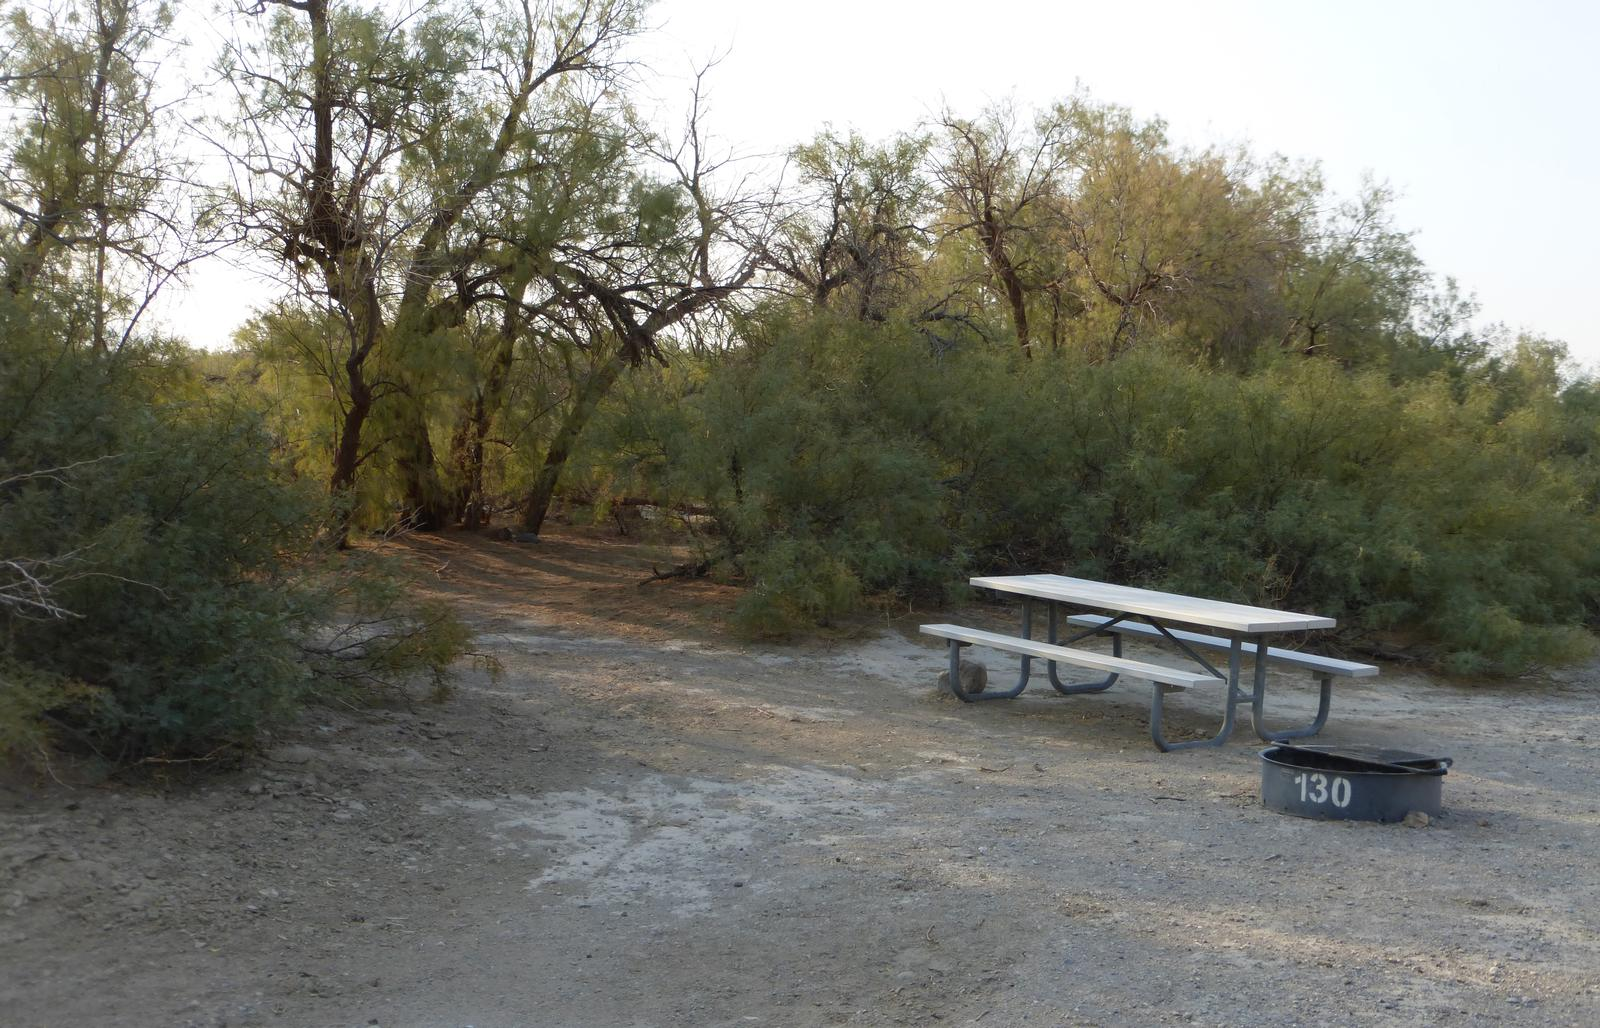 Tent only walk in site #130.  No campervans, RV's, or pop up tents.  One firepit with grate and one picnic table.  No utilities.